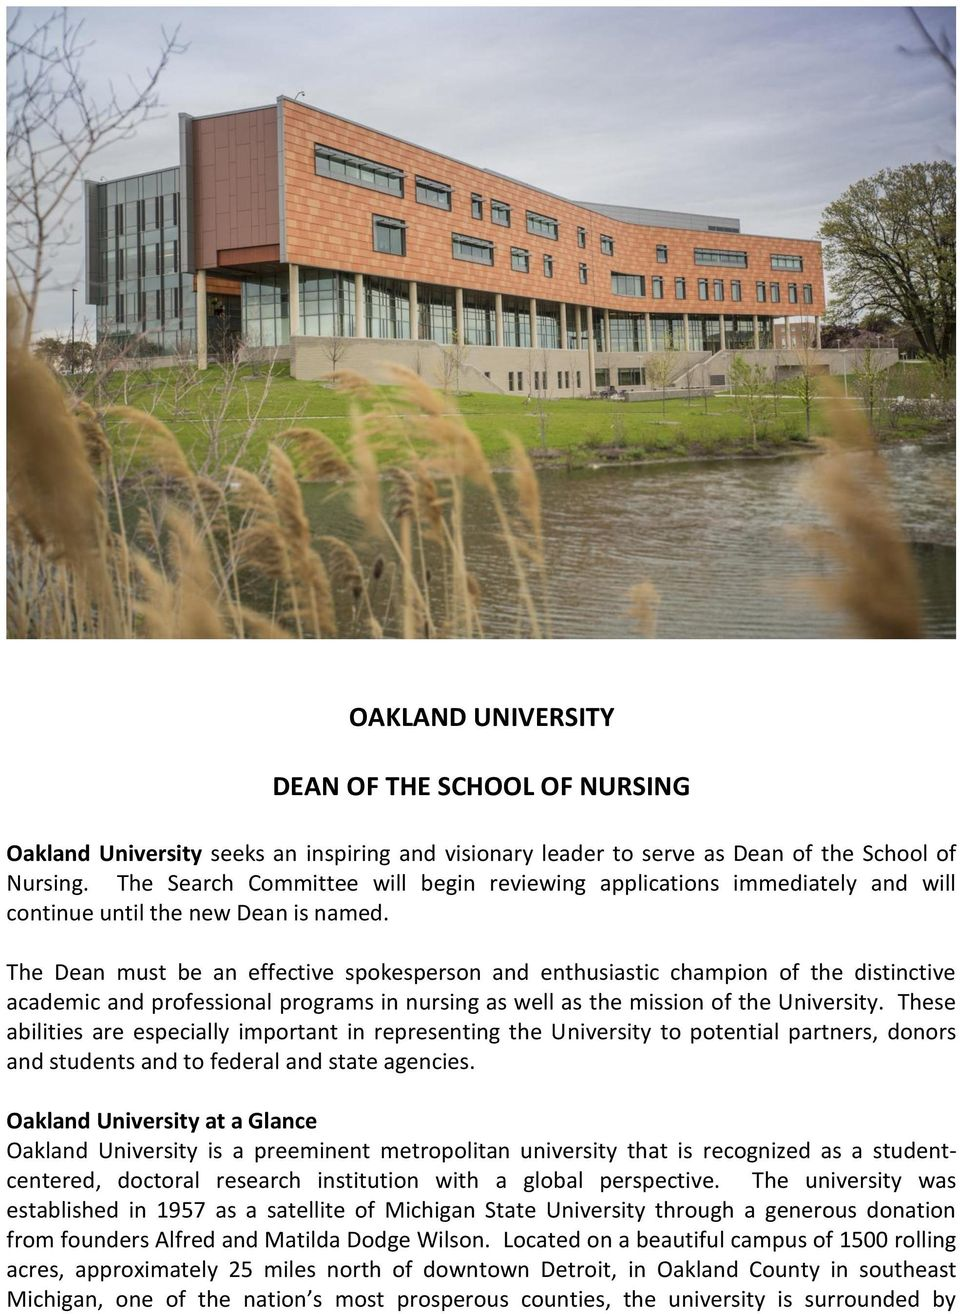 The Dean must be an effective spokesperson and enthusiastic champion of the distinctive academic and professional programs in nursing as well as the mission of the University.